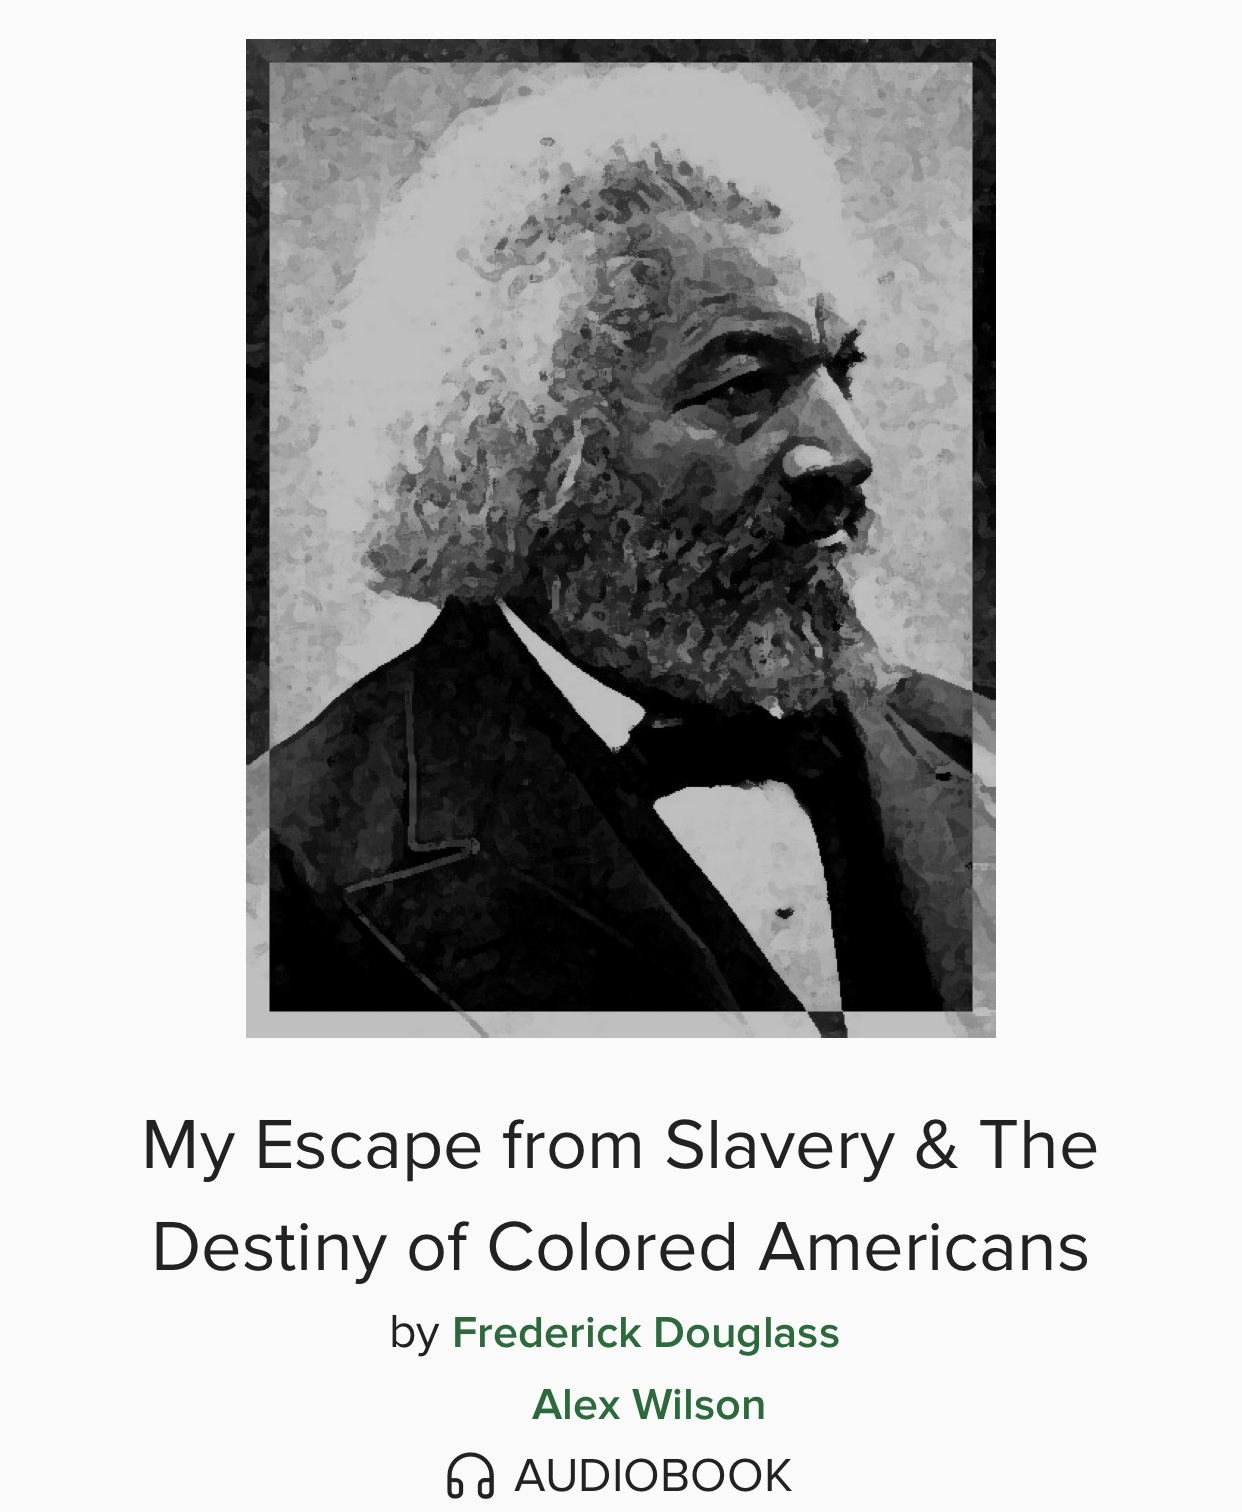 My Escape From Slavery & The Destiny of Colored Americans